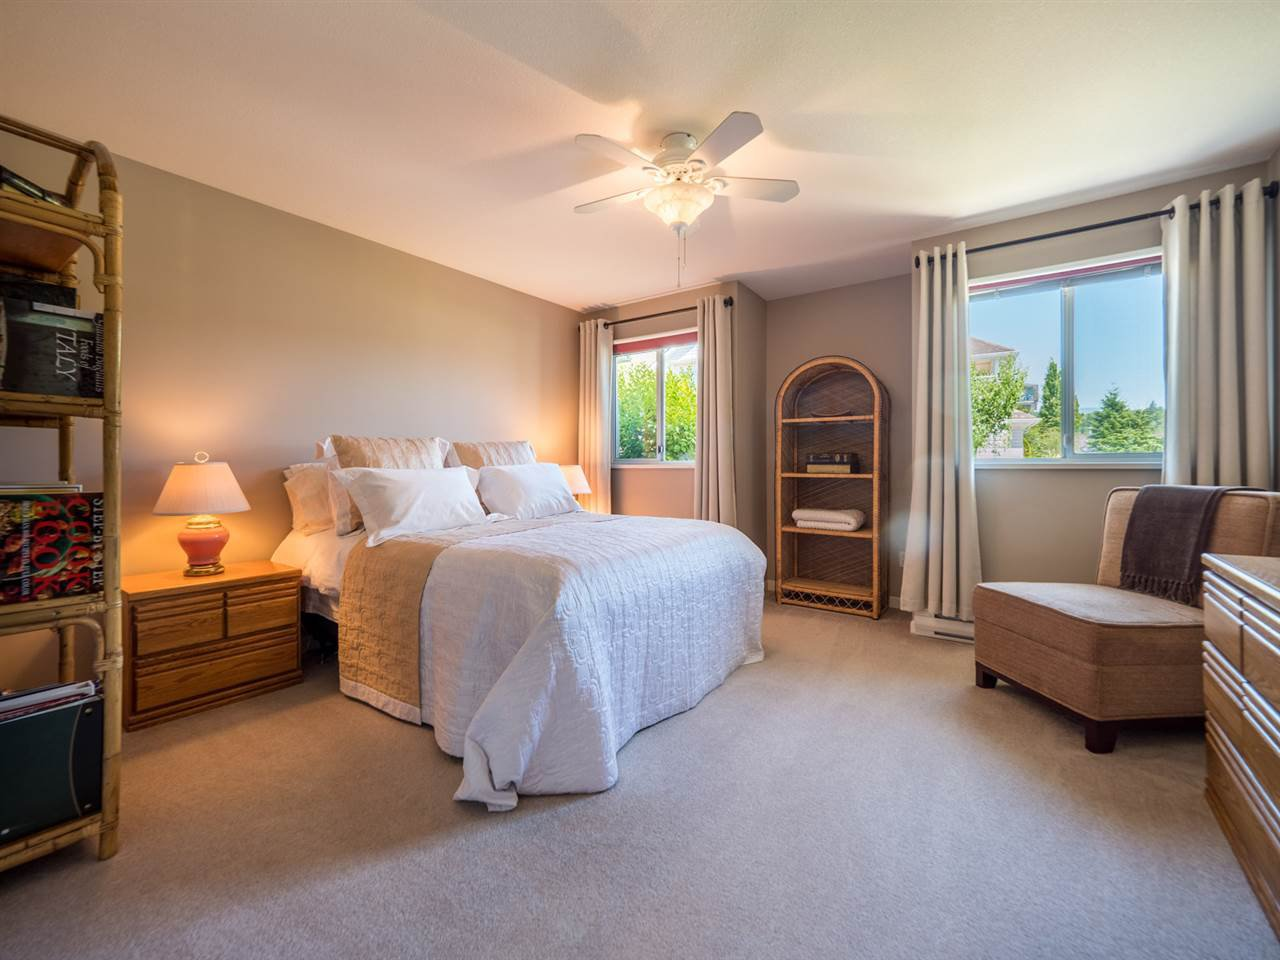 """Photo 9: Photos: 16 5630 TRAIL Avenue in Sechelt: Sechelt District Townhouse for sale in """"HIGHPOINT"""" (Sunshine Coast)  : MLS®# R2382780"""